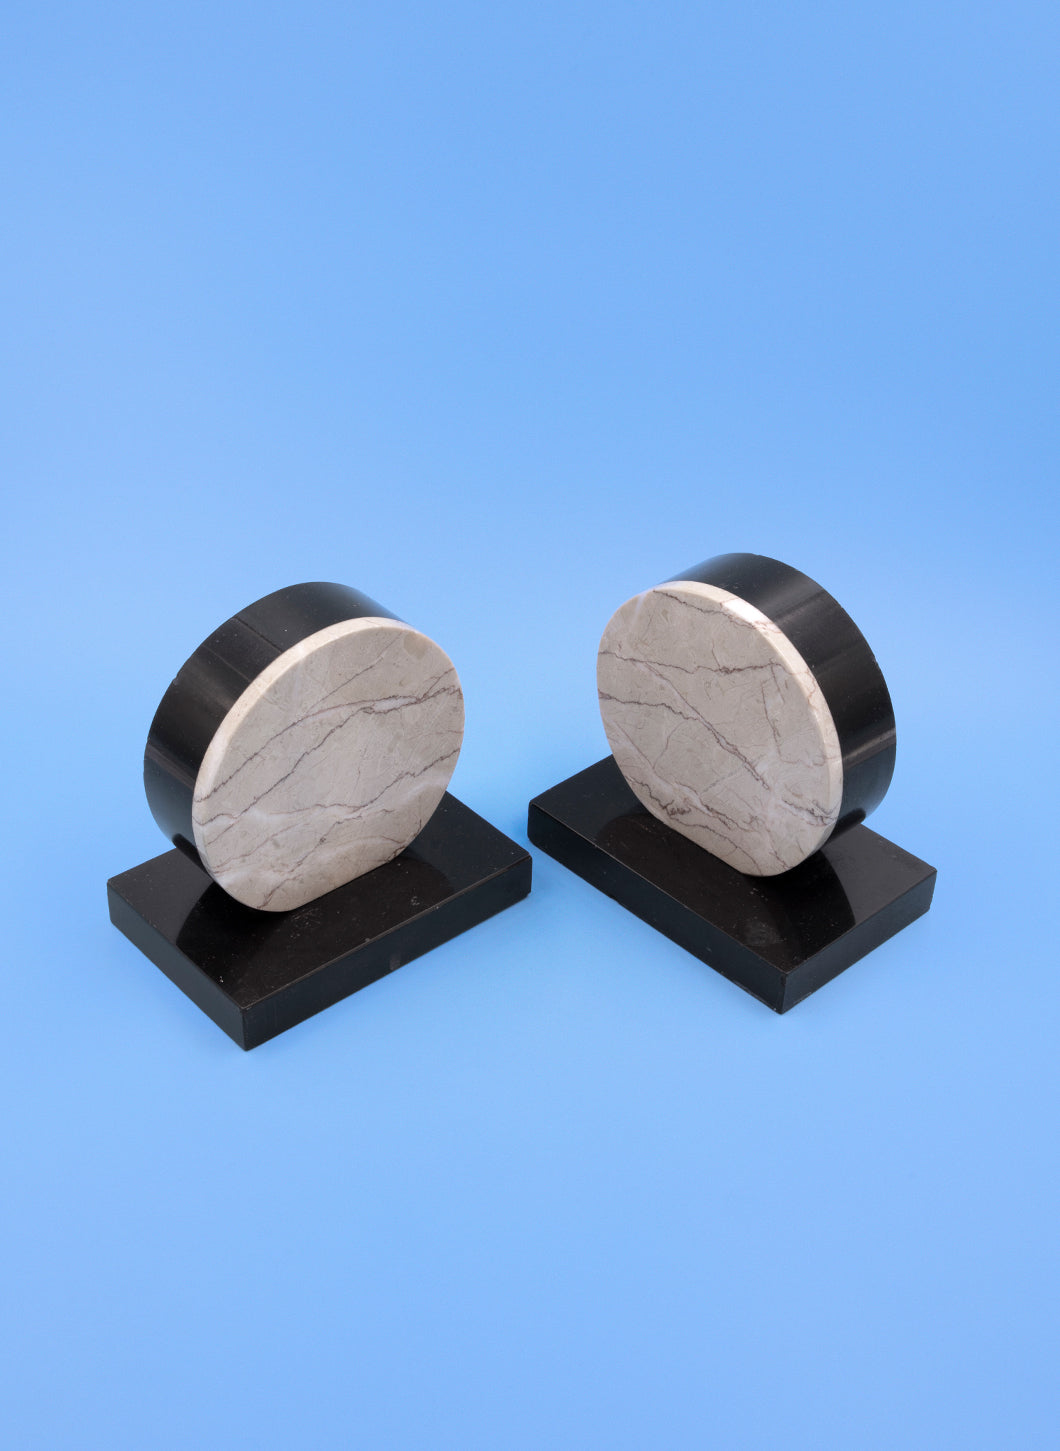 Bookends in Onyx and Beige Marble